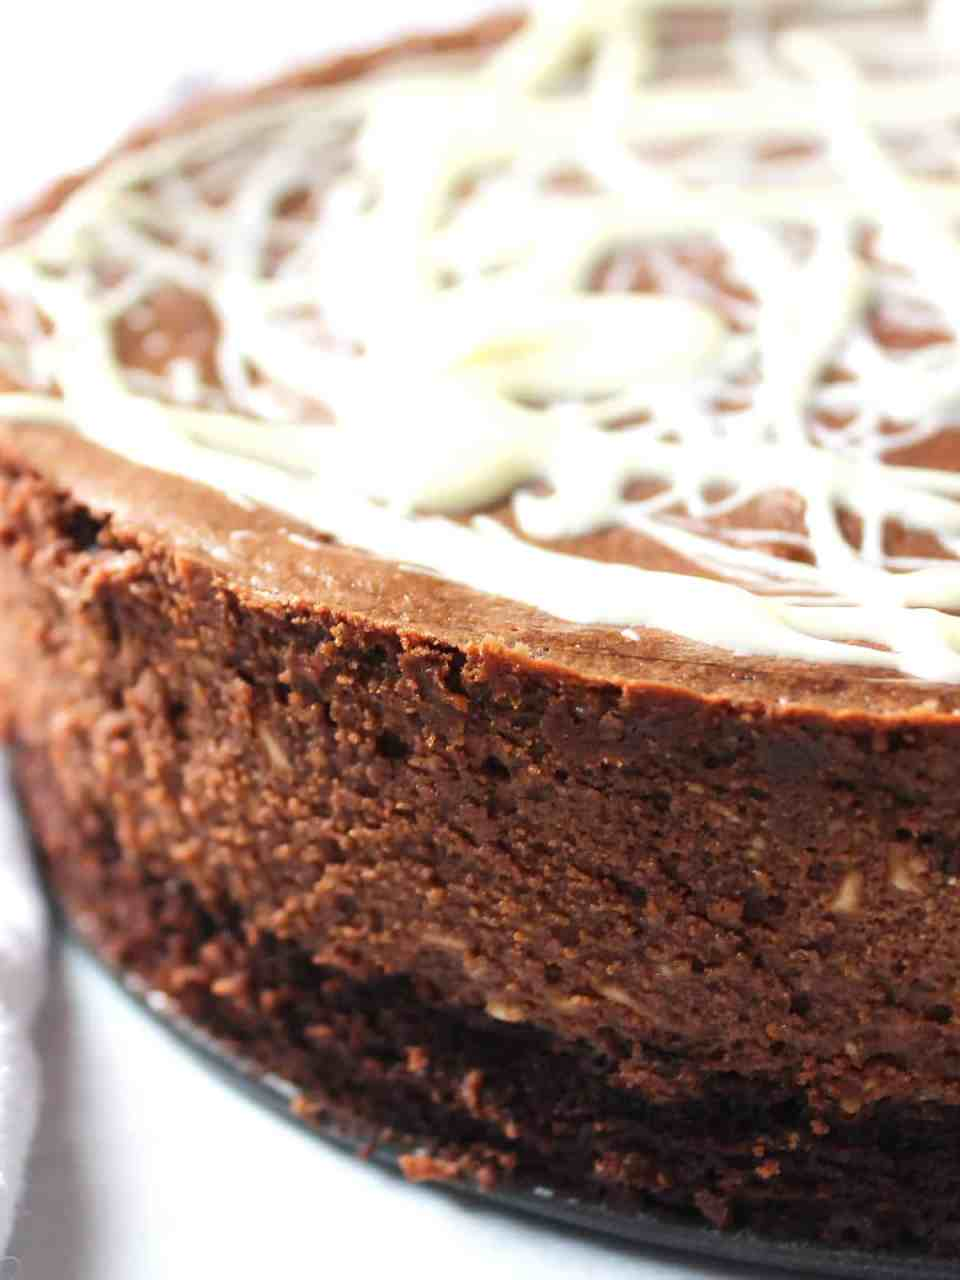 Close up of the side of the brownie bottomed cheesecake.